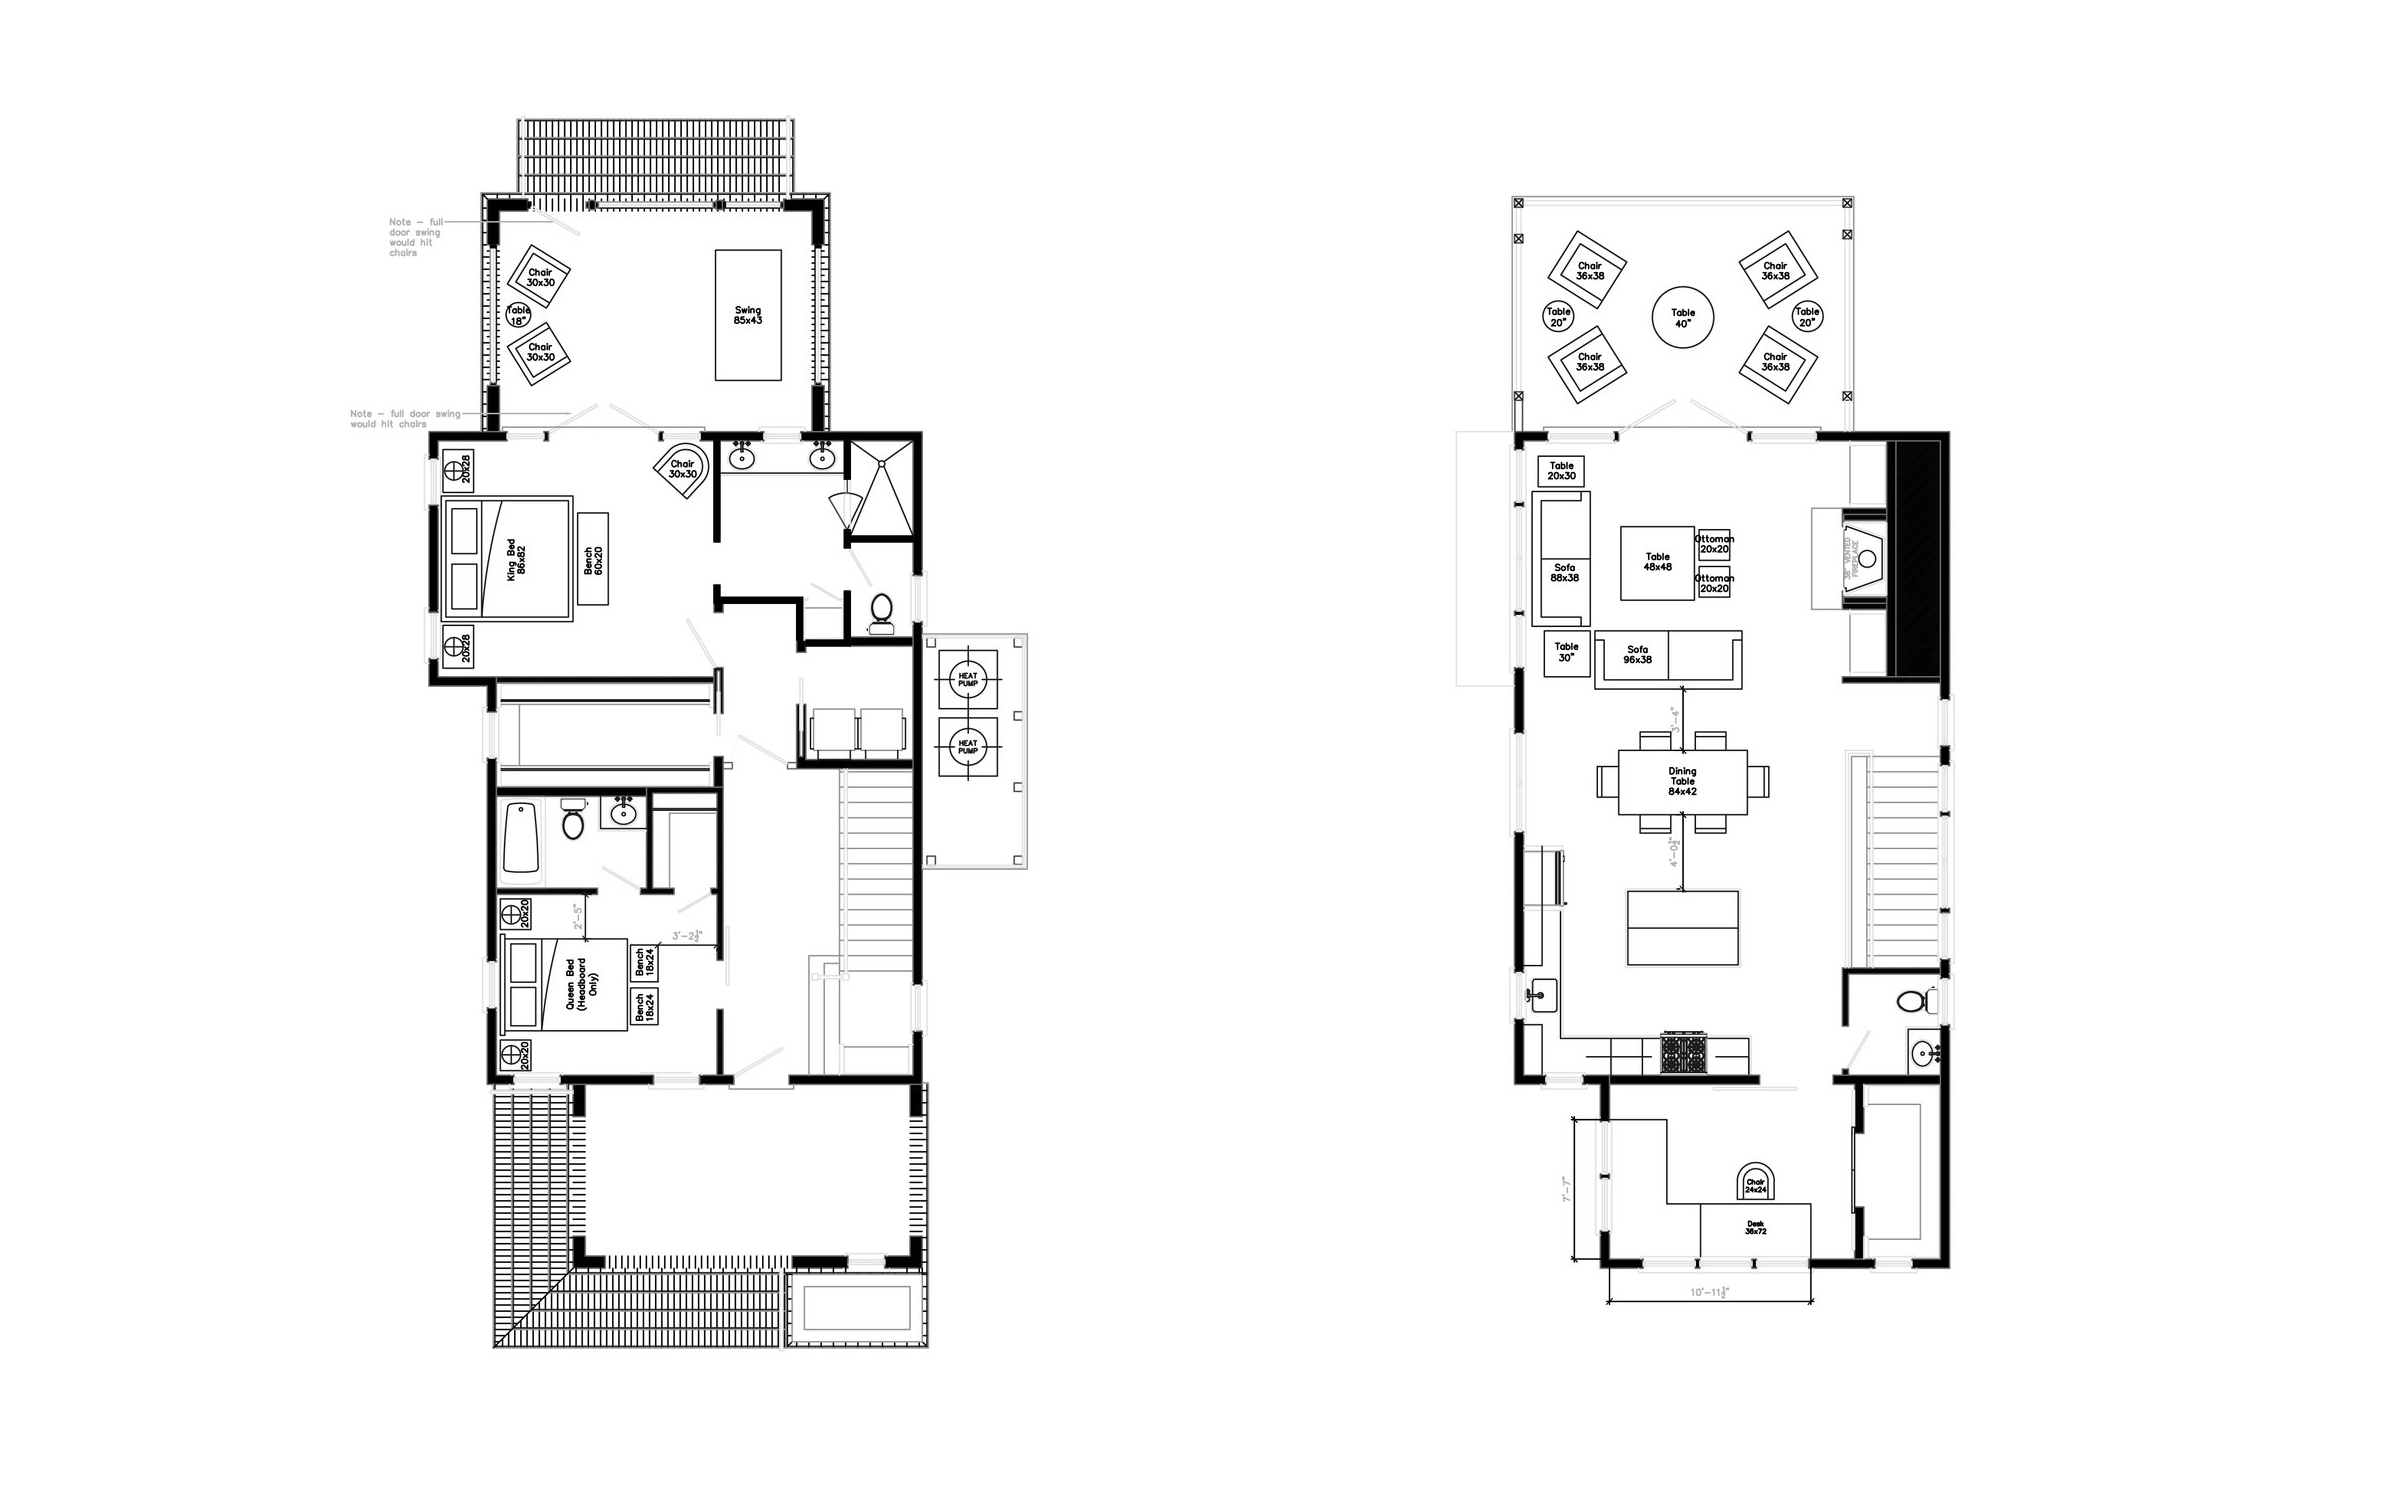 16-094_floor plans Option 1 3.31.17.jpg